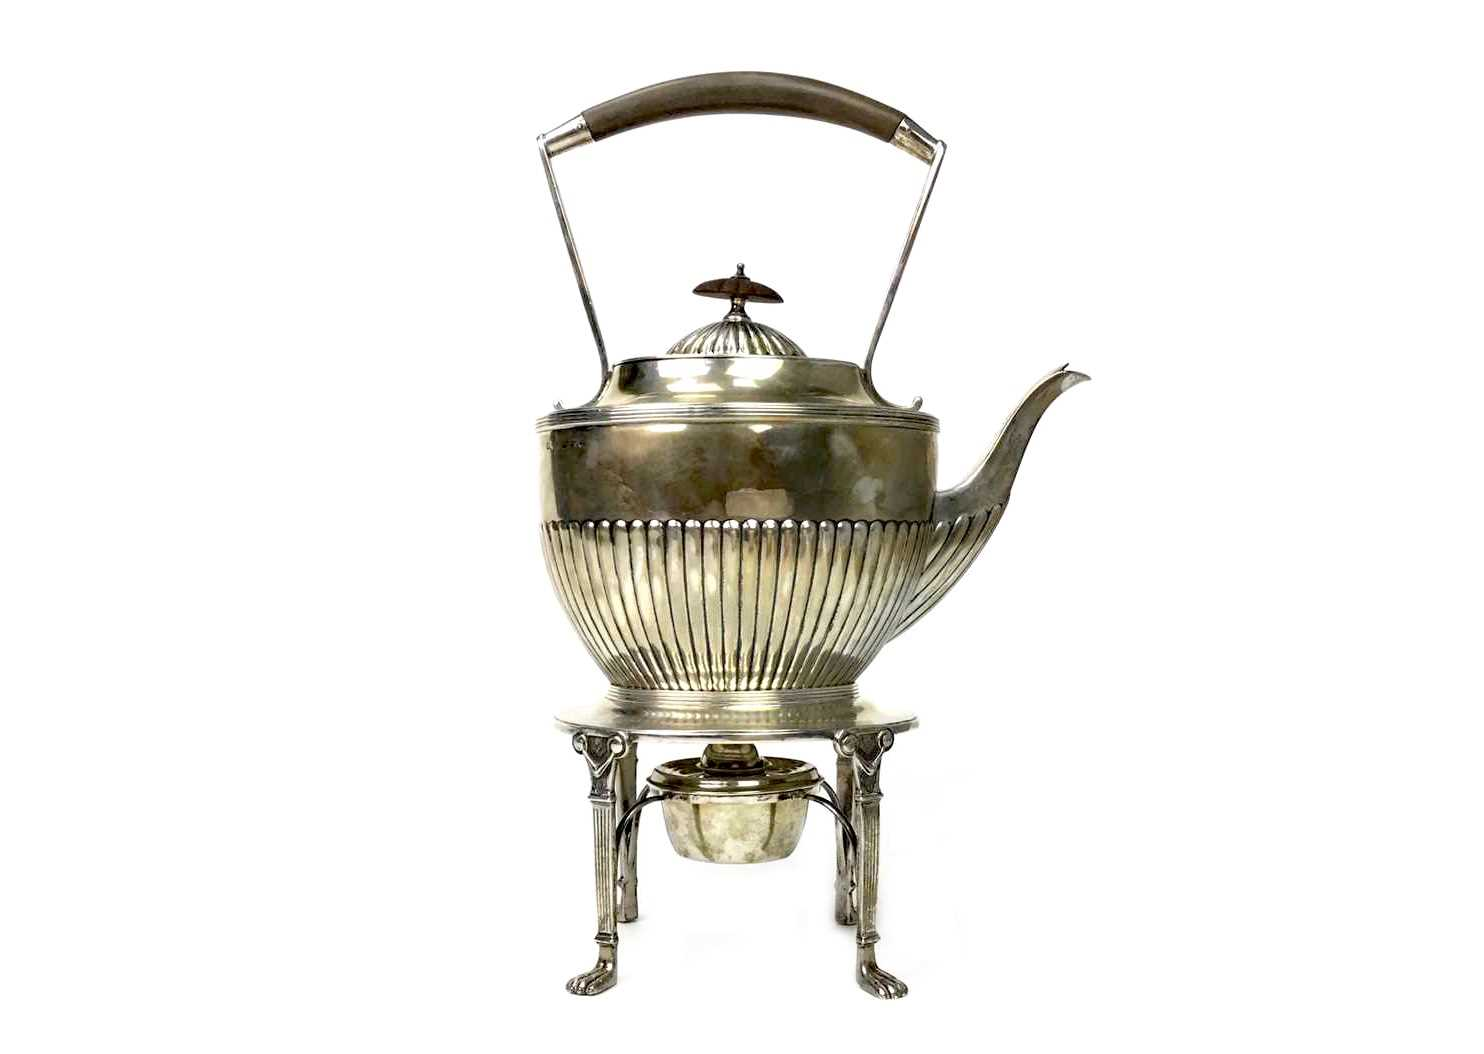 Lot 817 - A VICTORIAN SILVER KETTLE WITH STAND AND WARMER